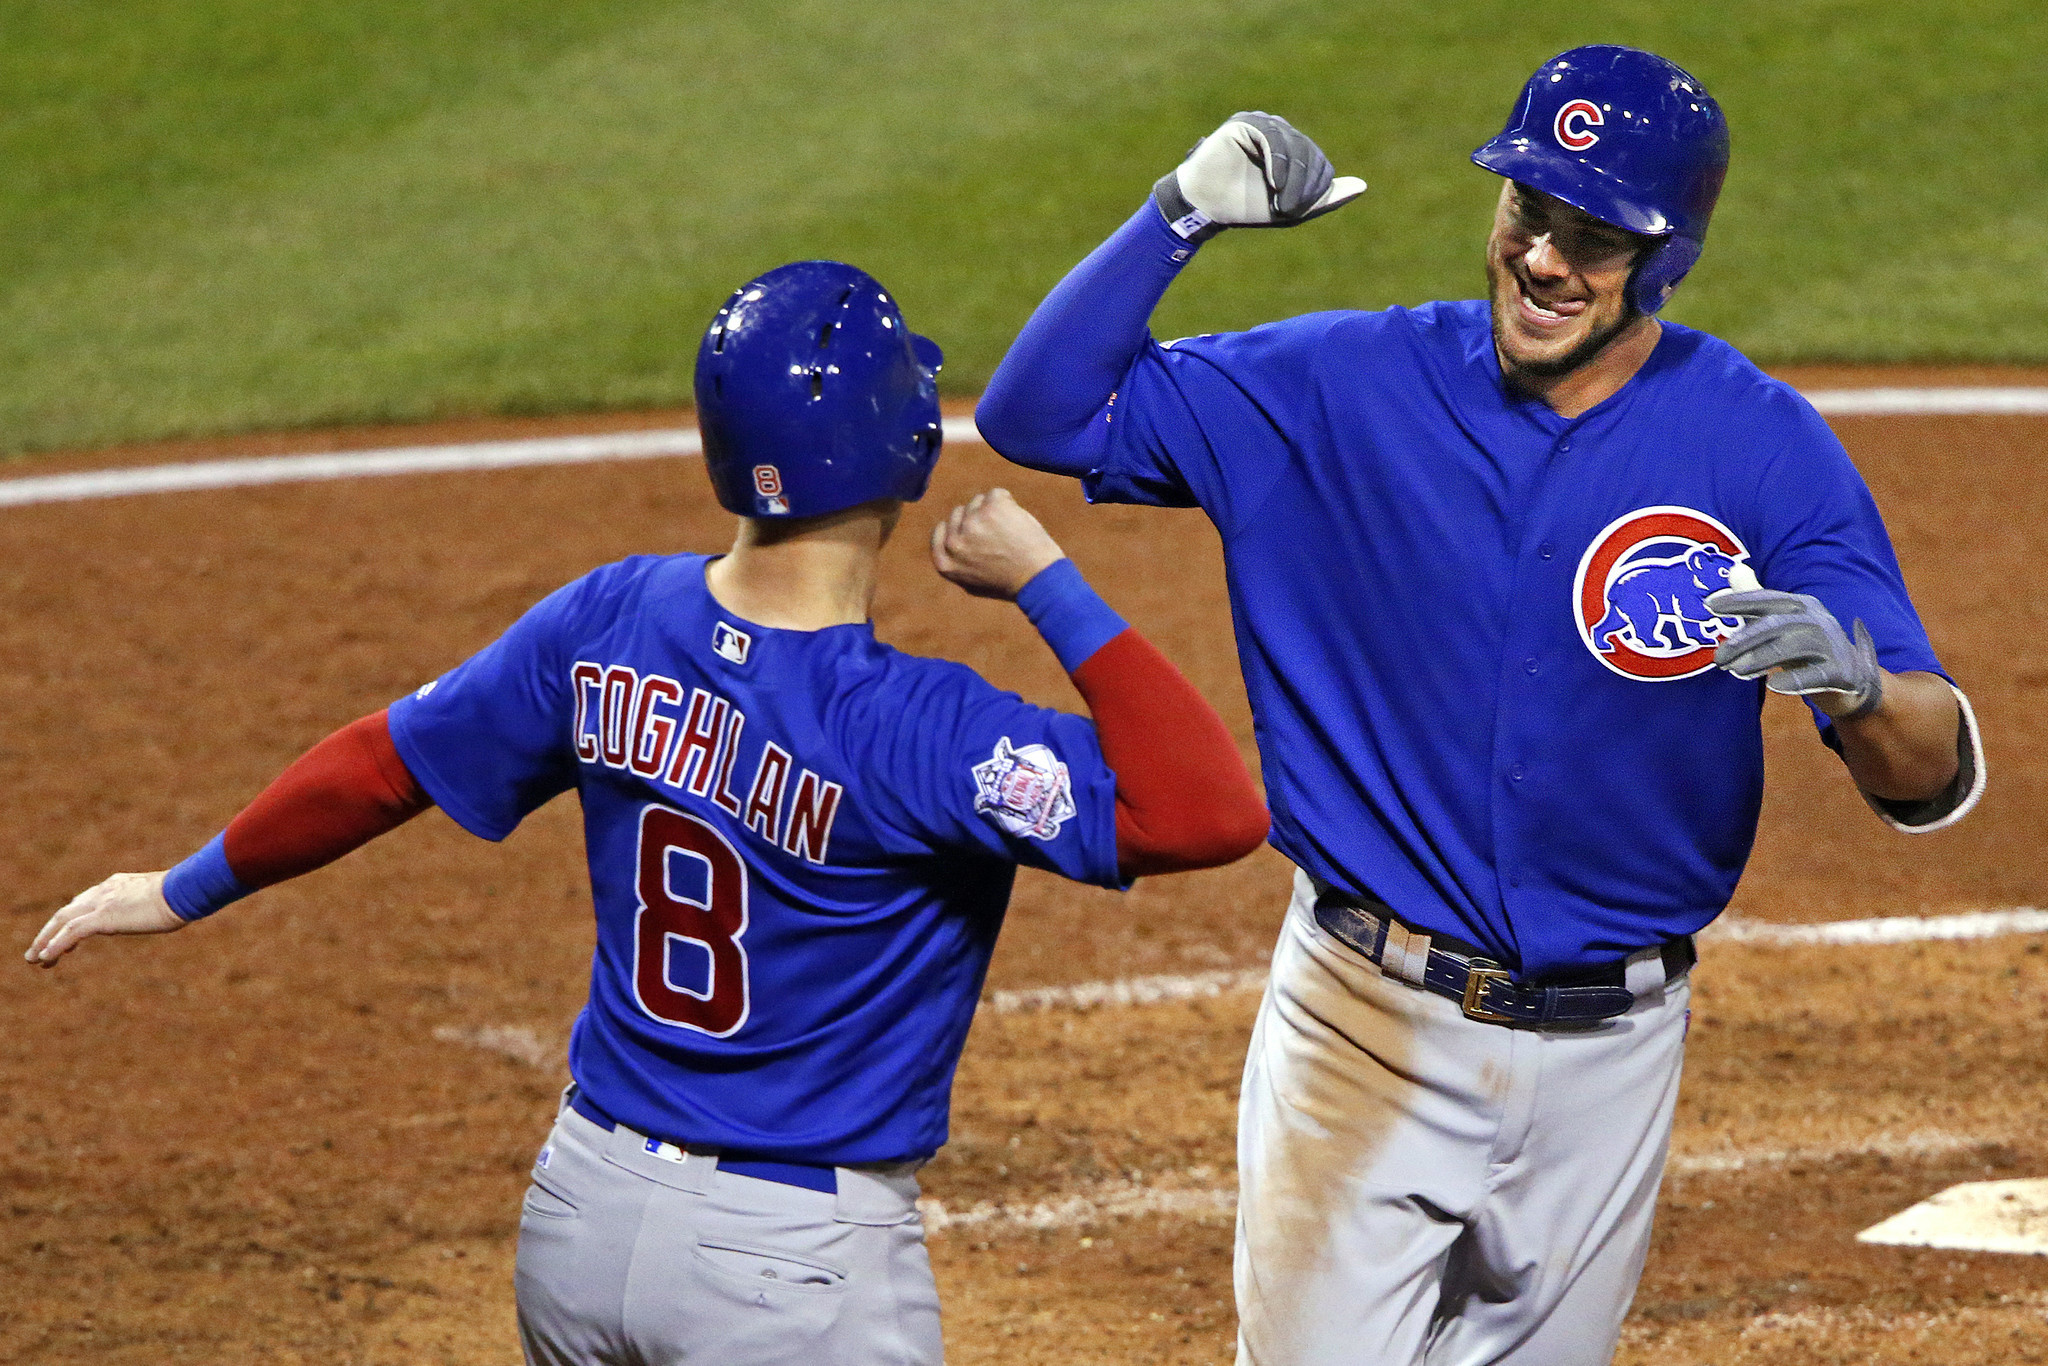 Kris Bryant's 100th RBI could pay off for teammate Chris Coghlan - Chicago Tribune